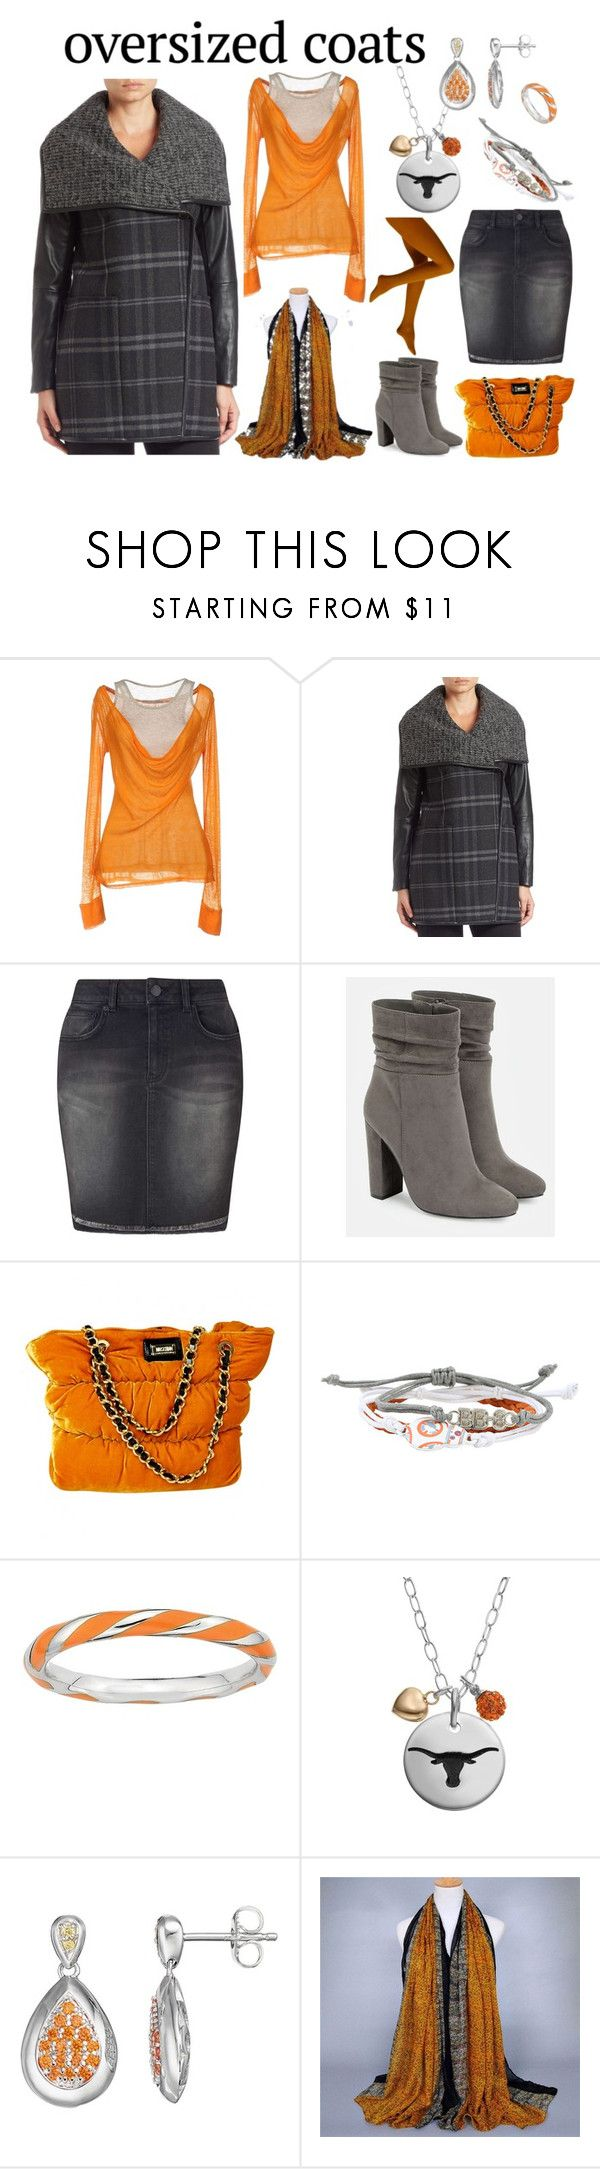 """Chic Oversized Coats"" by miriam-witte ❤ liked on Polyvore featuring Pianurastudio, Vera Wang, Miss Selfridge, JustFab, Moschino Cheap & Chic, Disney, Stacks and Stones, Fiora and Lotopia"